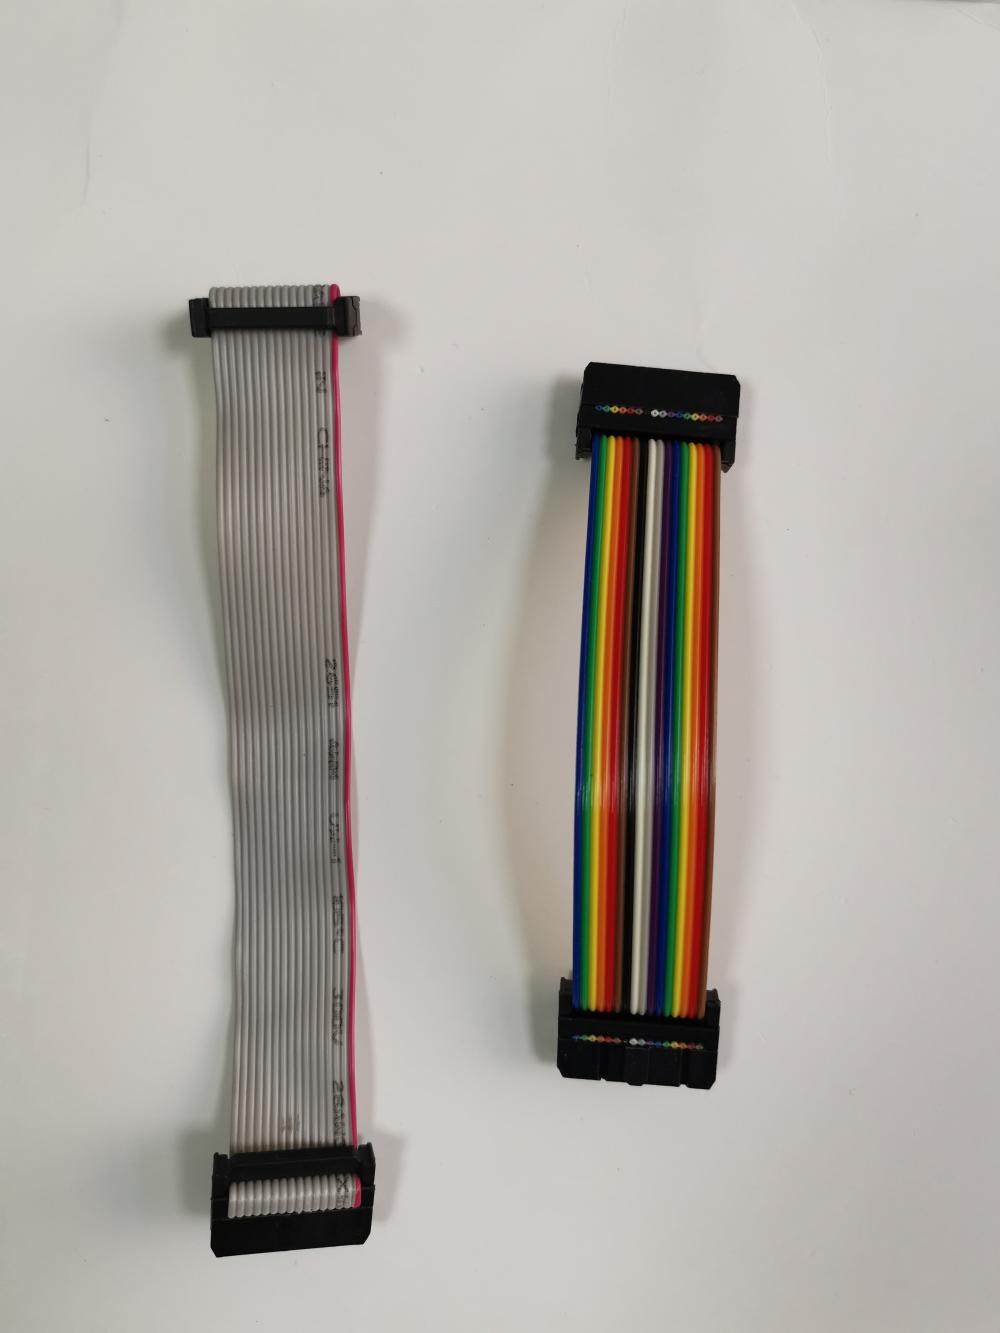 Ribbon Cable And Power Cable